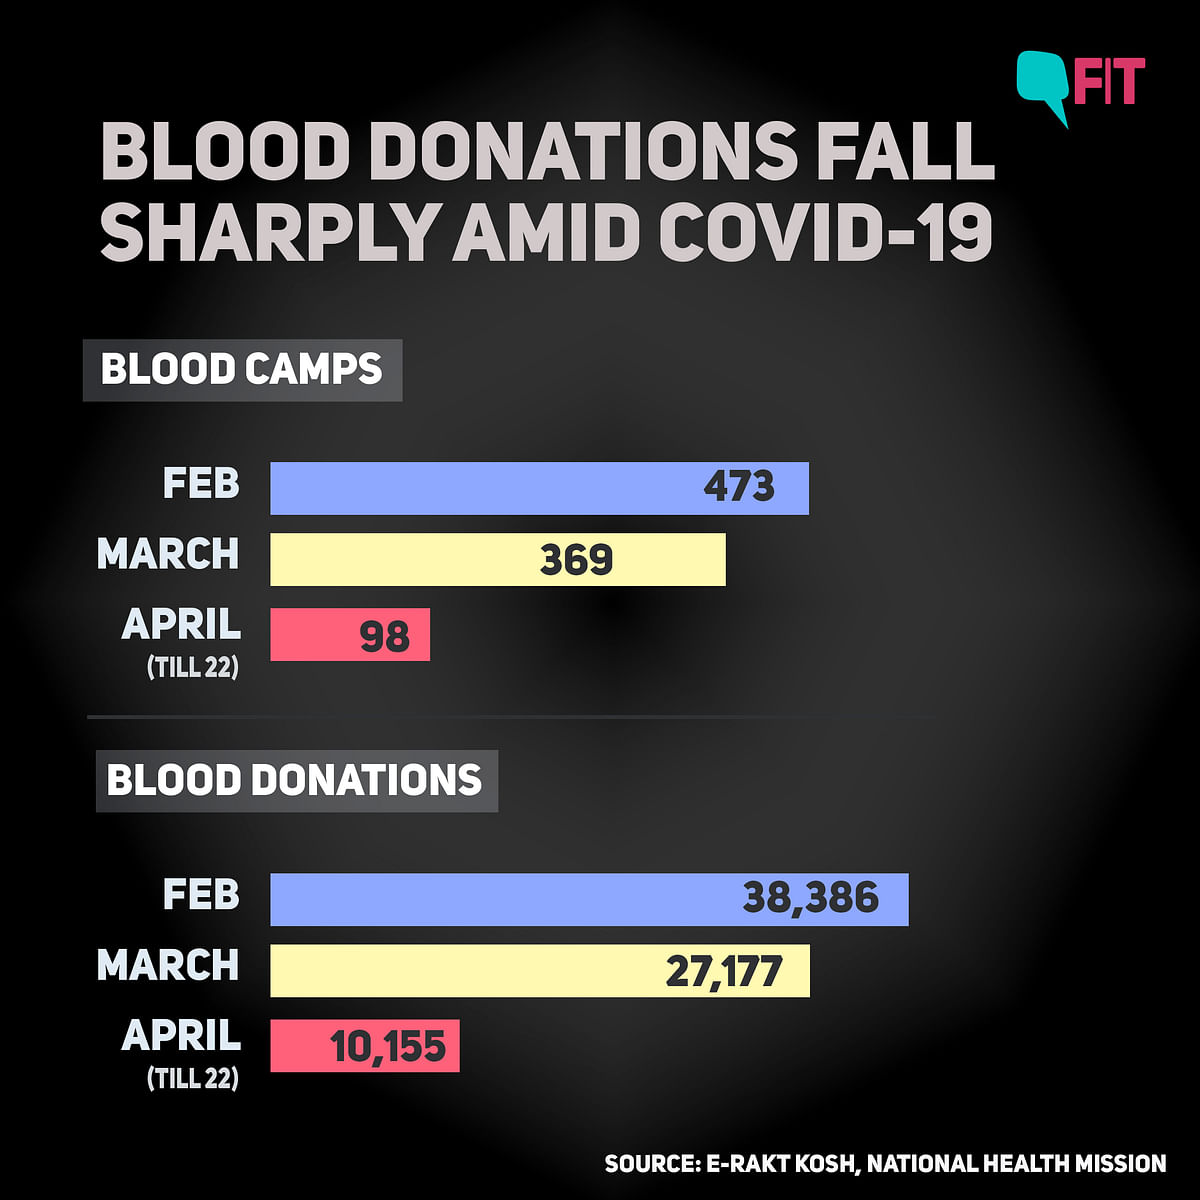 Blood Donations Drop by 75% Due to COVID-19, Here's How to Help